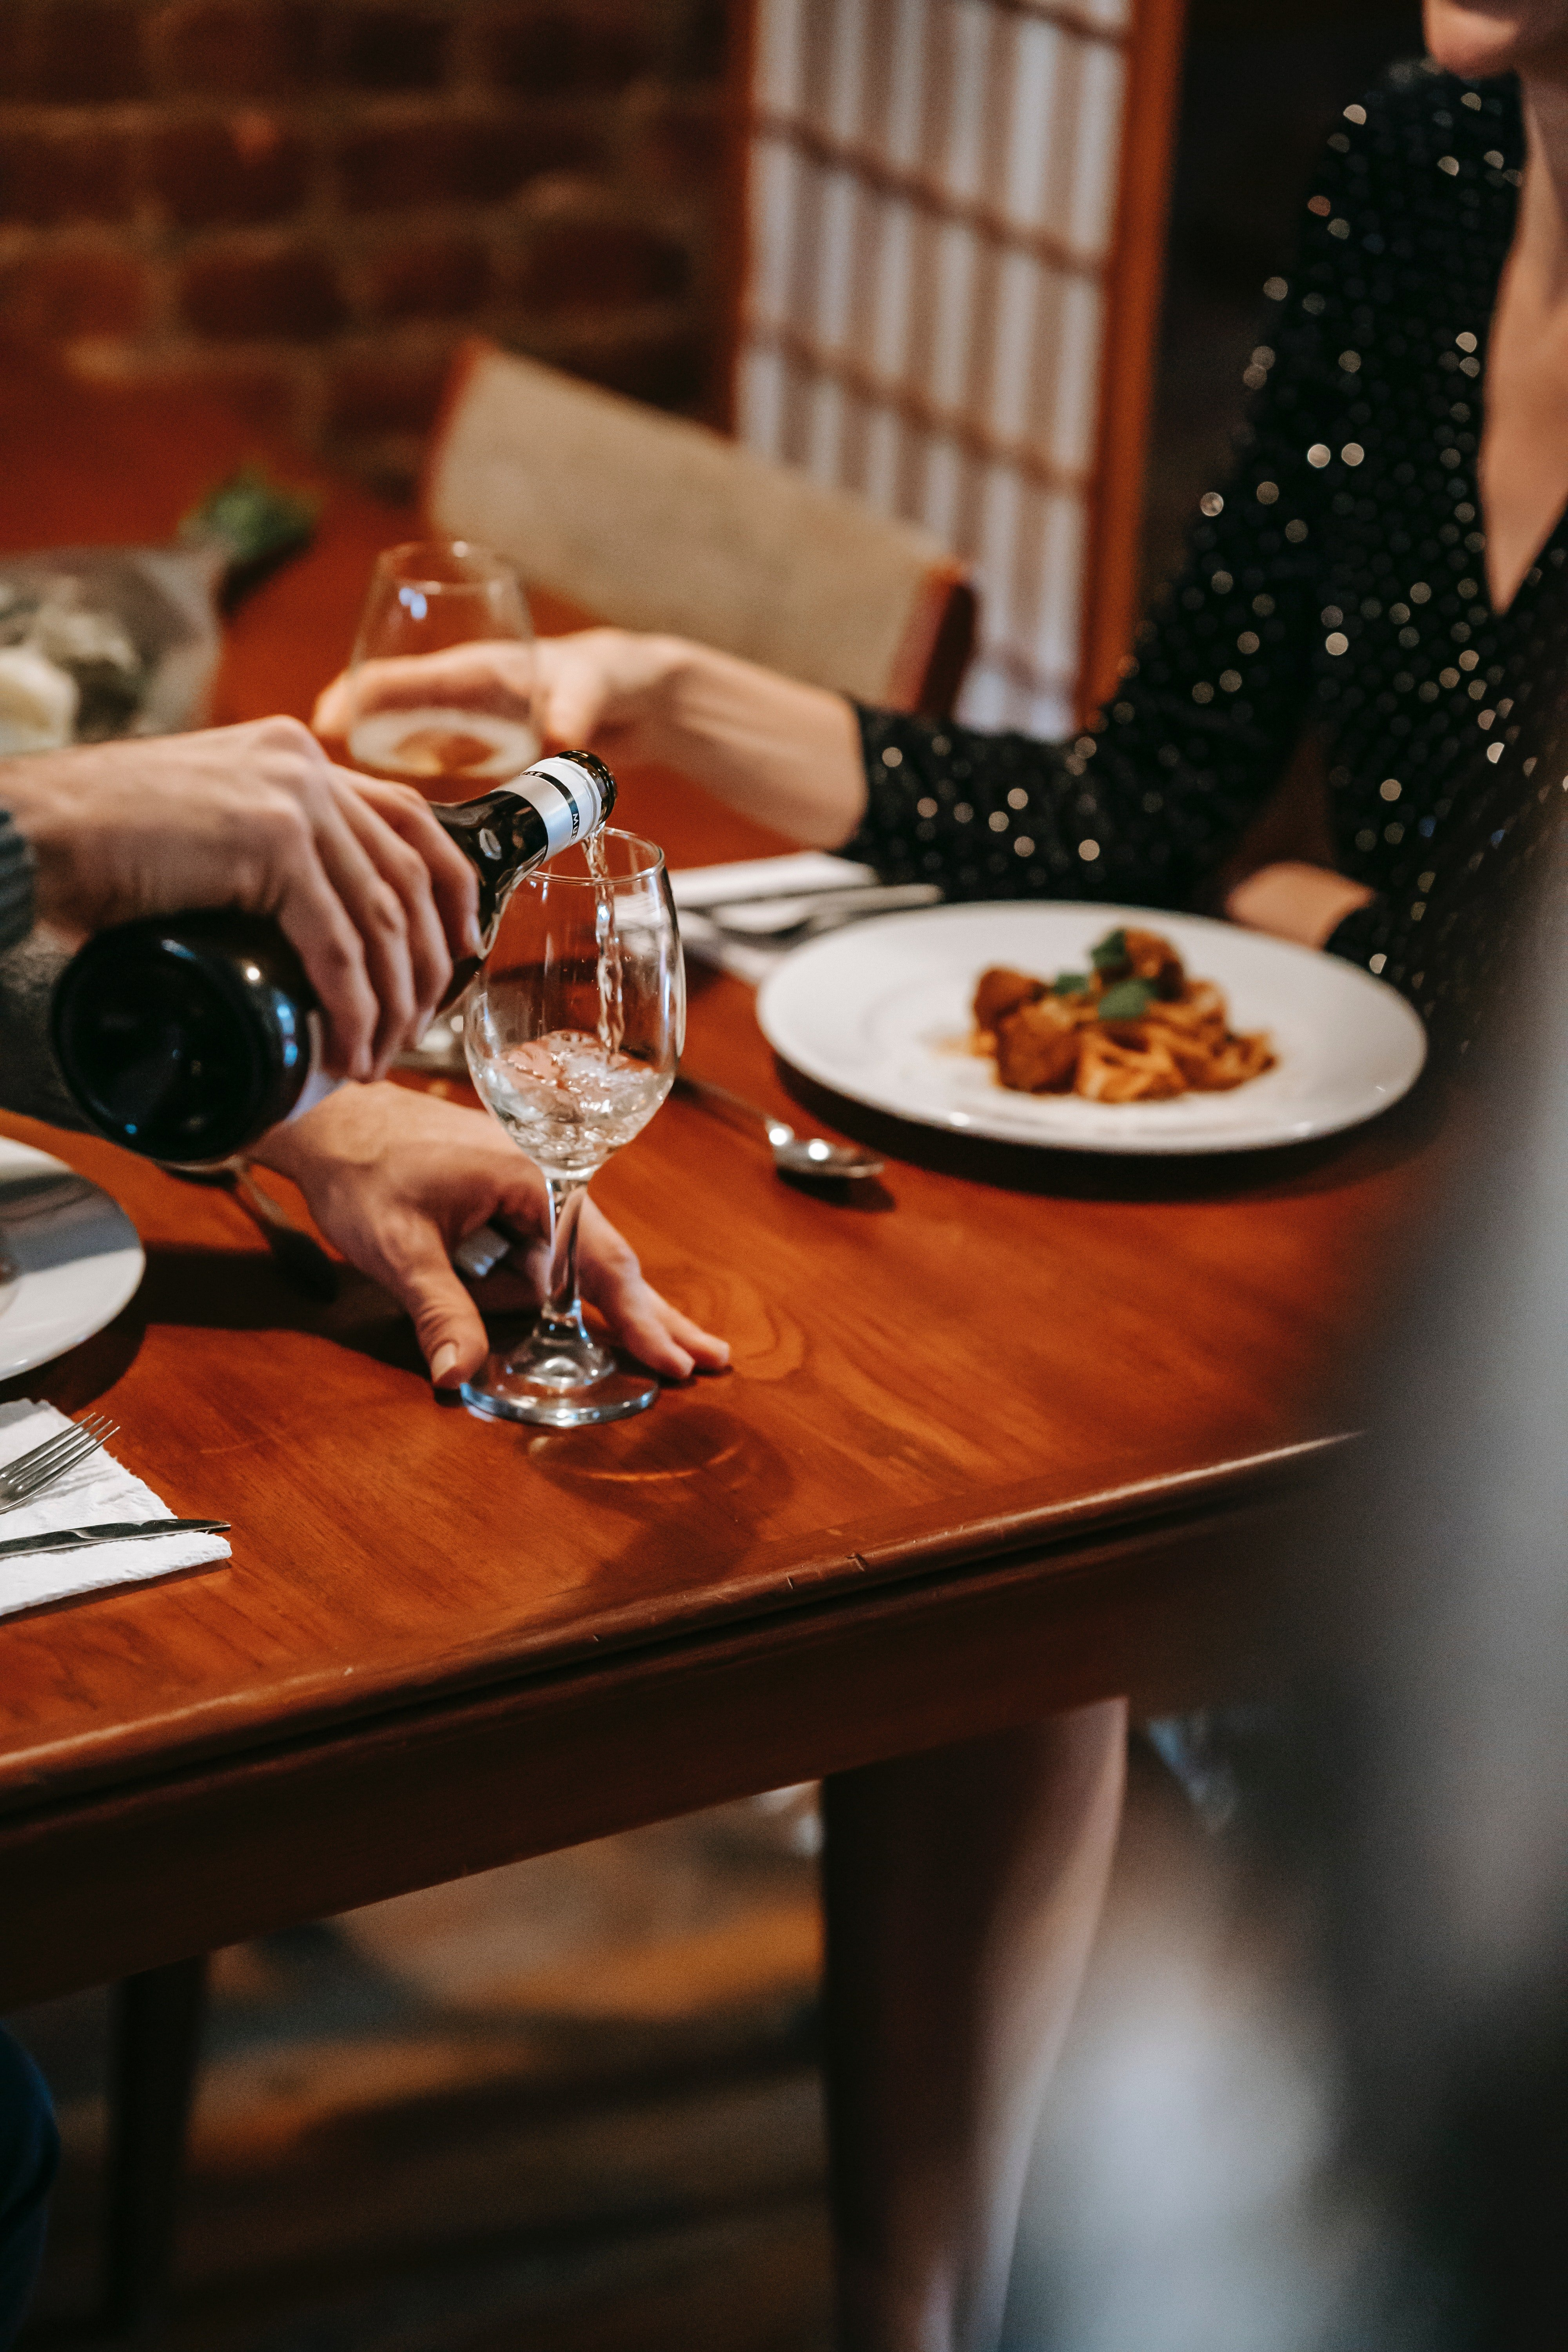 I was having dinner with Jonathan when he popped the question | Source: Pexels